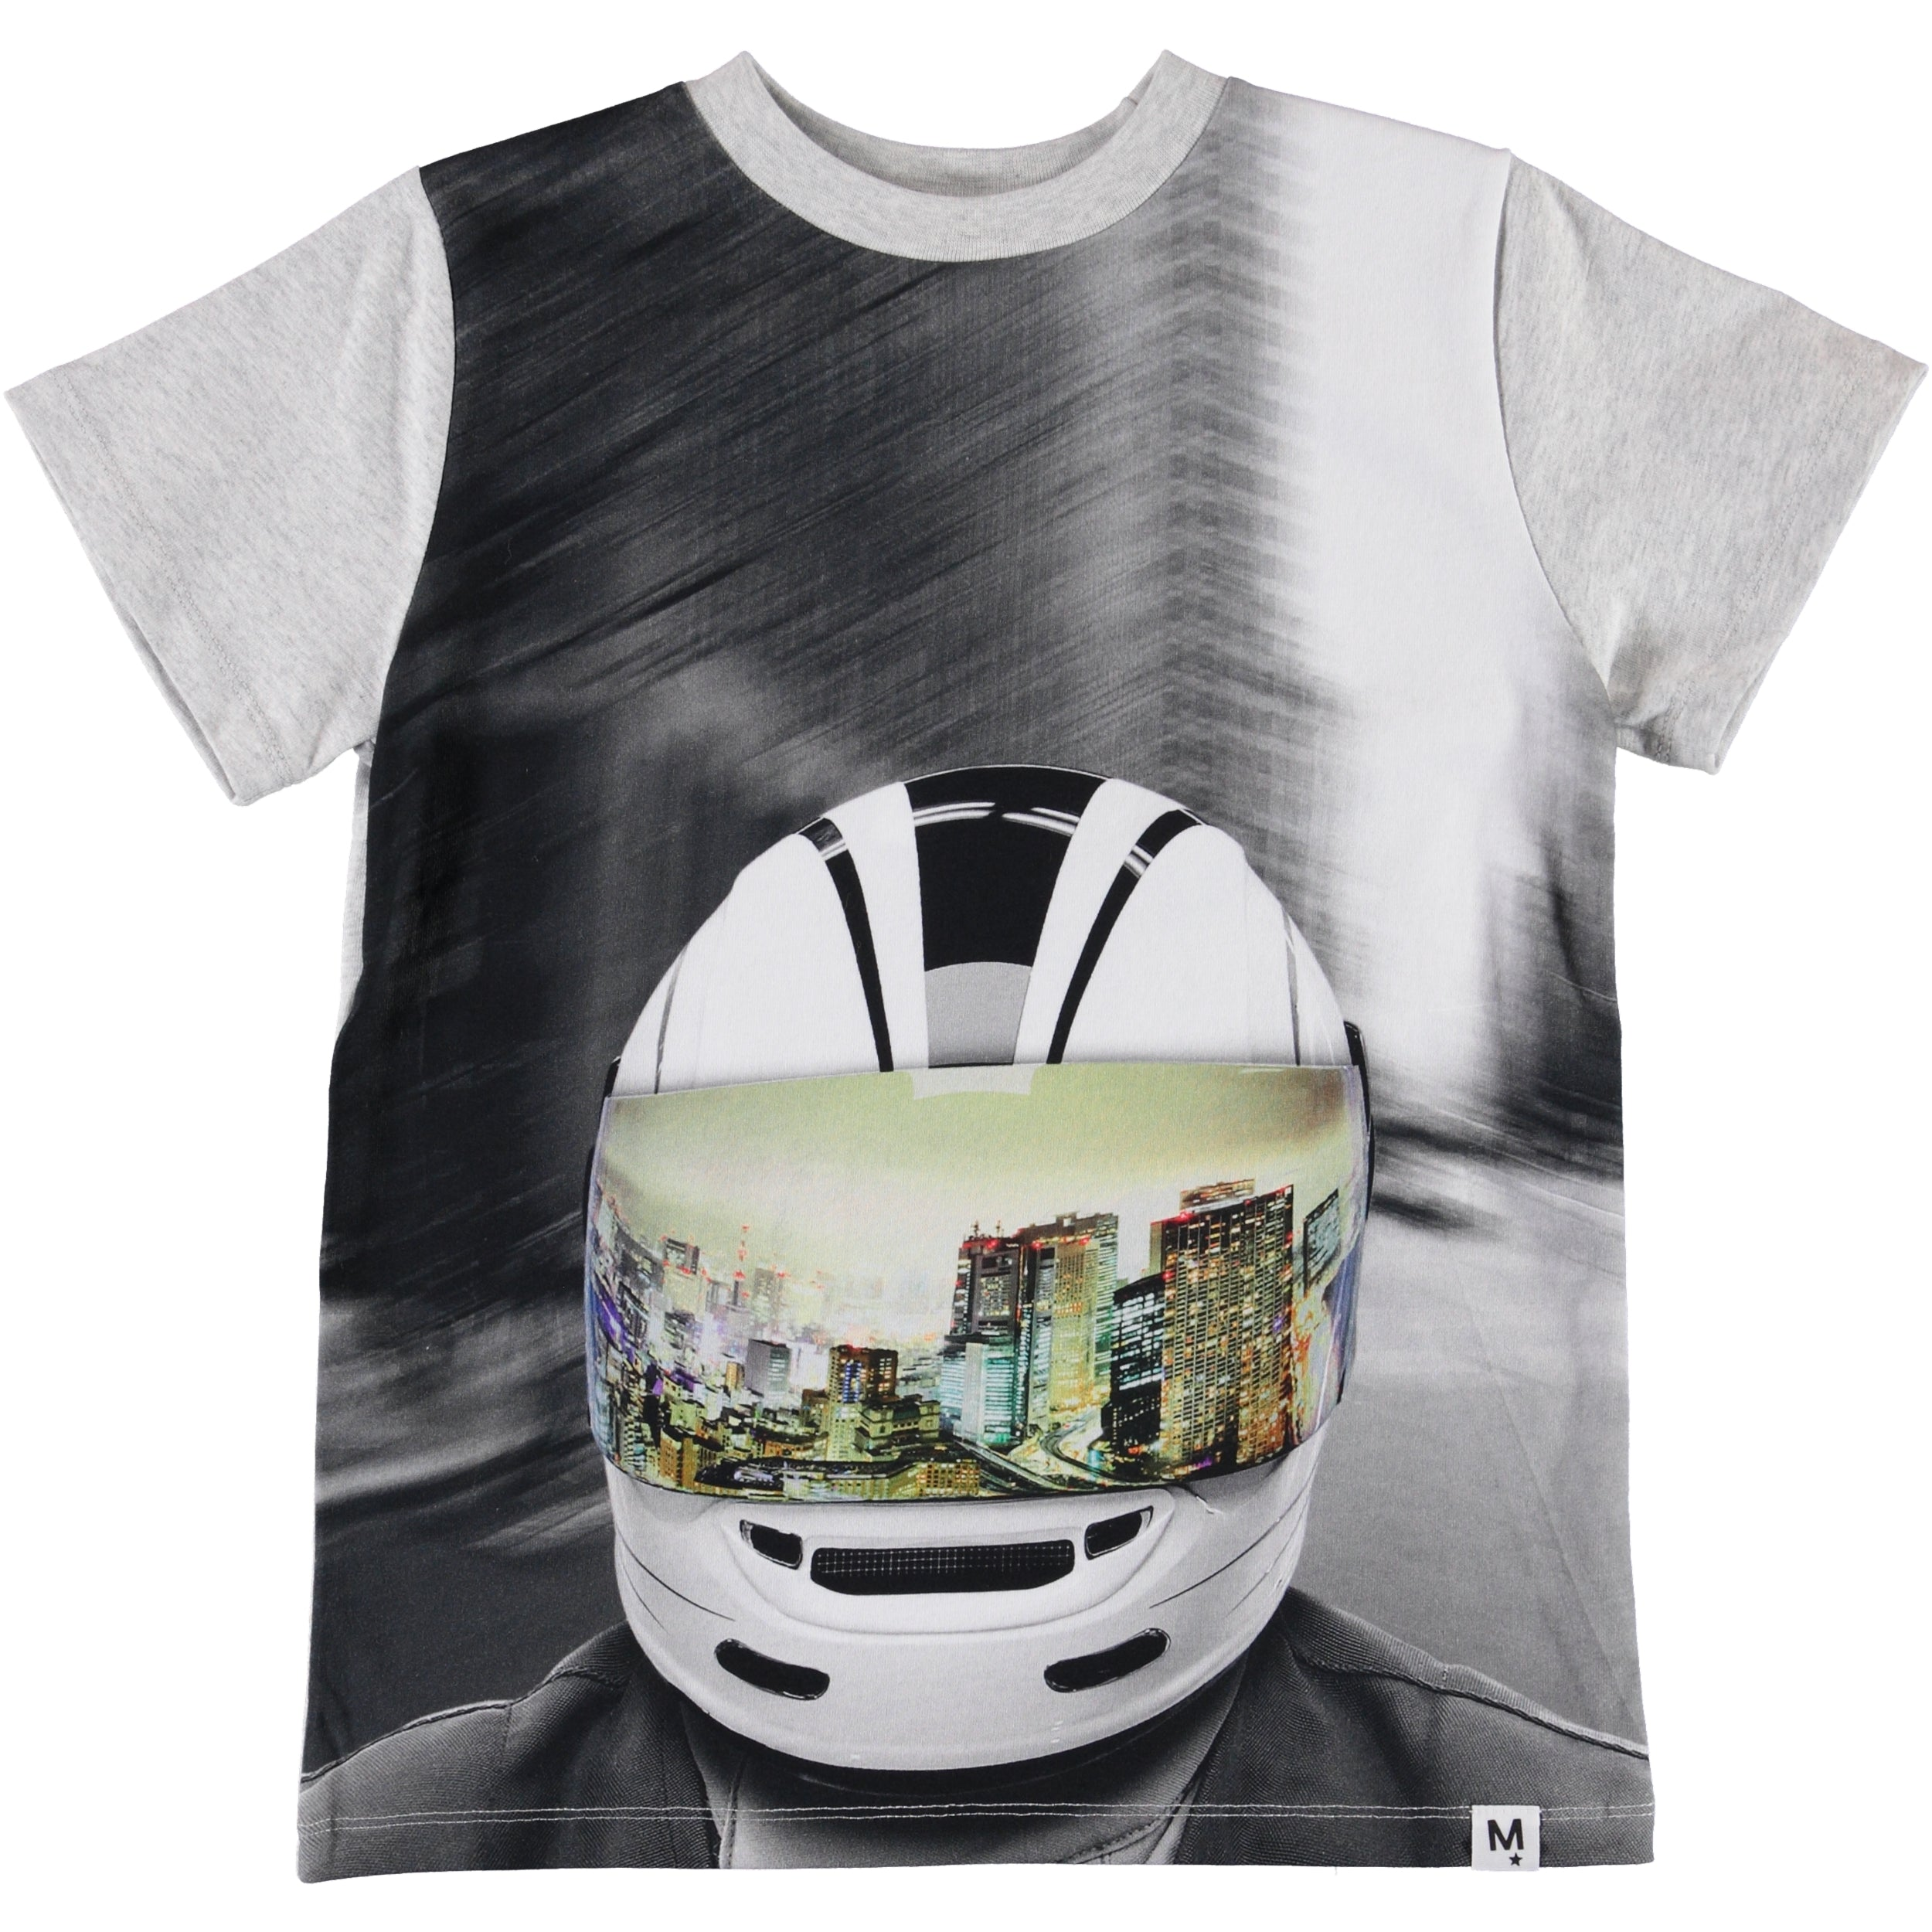 Molo Road T-shirt - MC Helmet